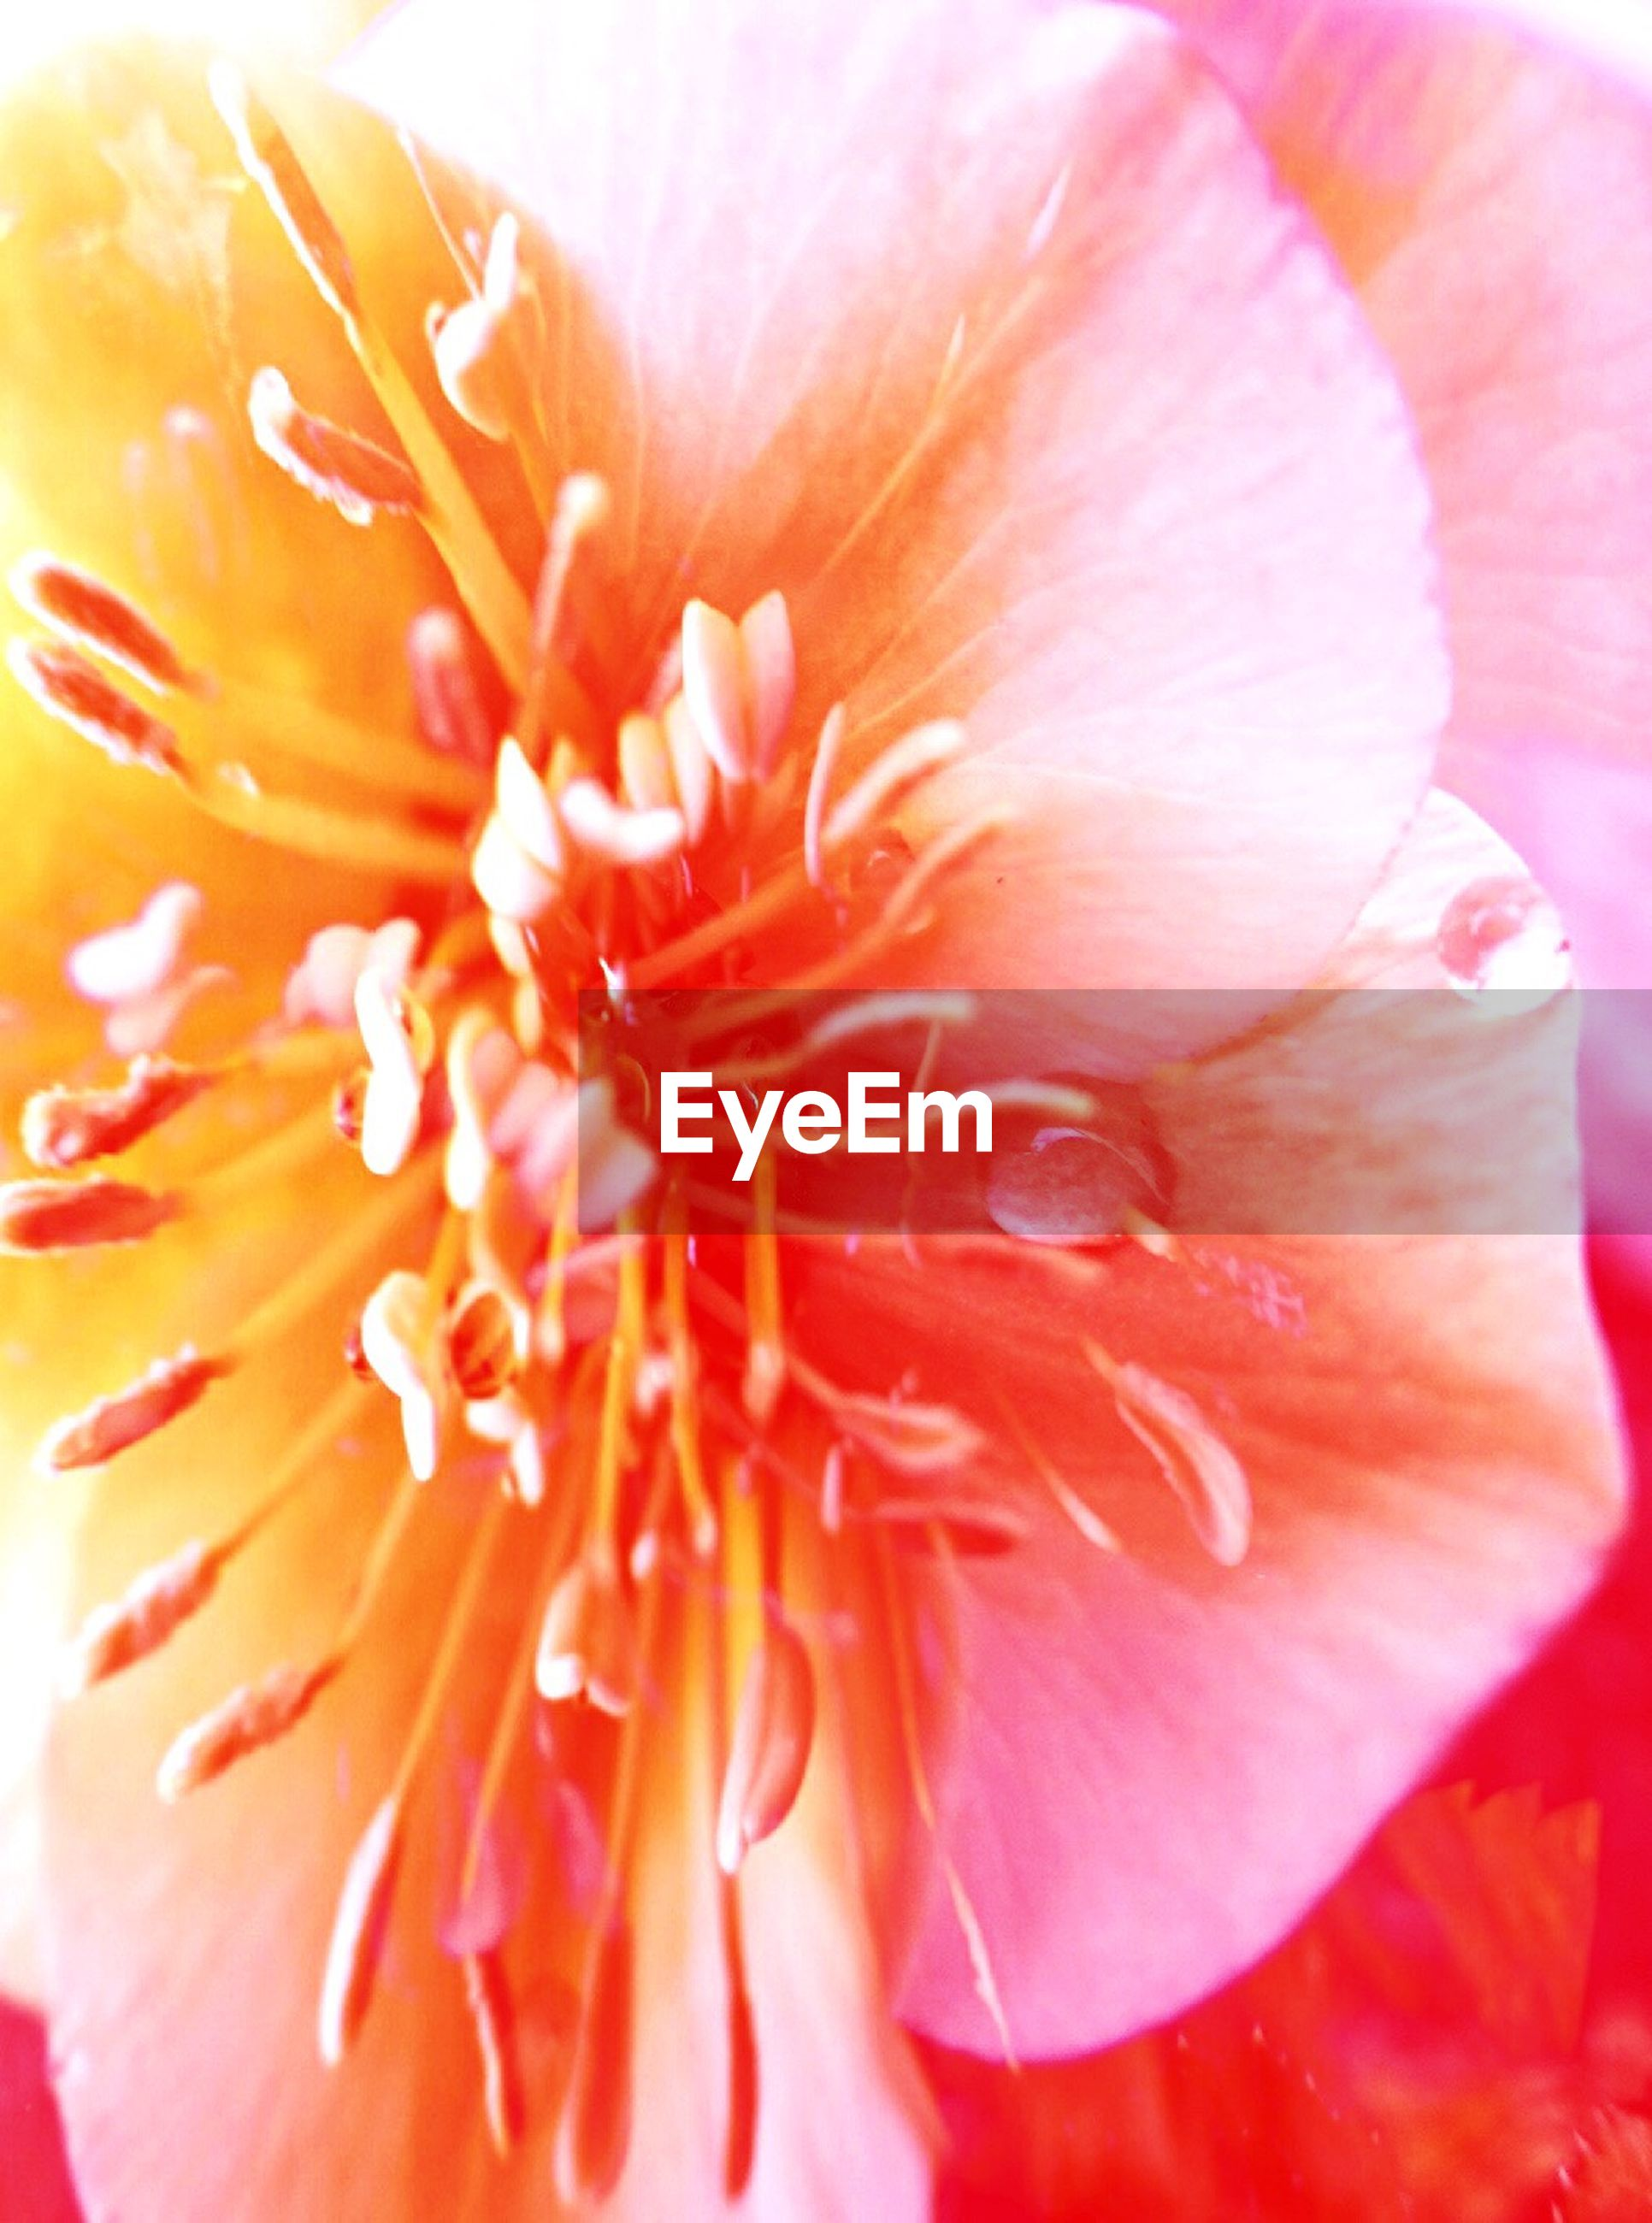 flower, fragility, freshness, beauty in nature, nature, petal, flower head, close-up, full frame, backgrounds, growth, red, macro, orange color, springtime, outdoors, no people, day, soft focus, pistil